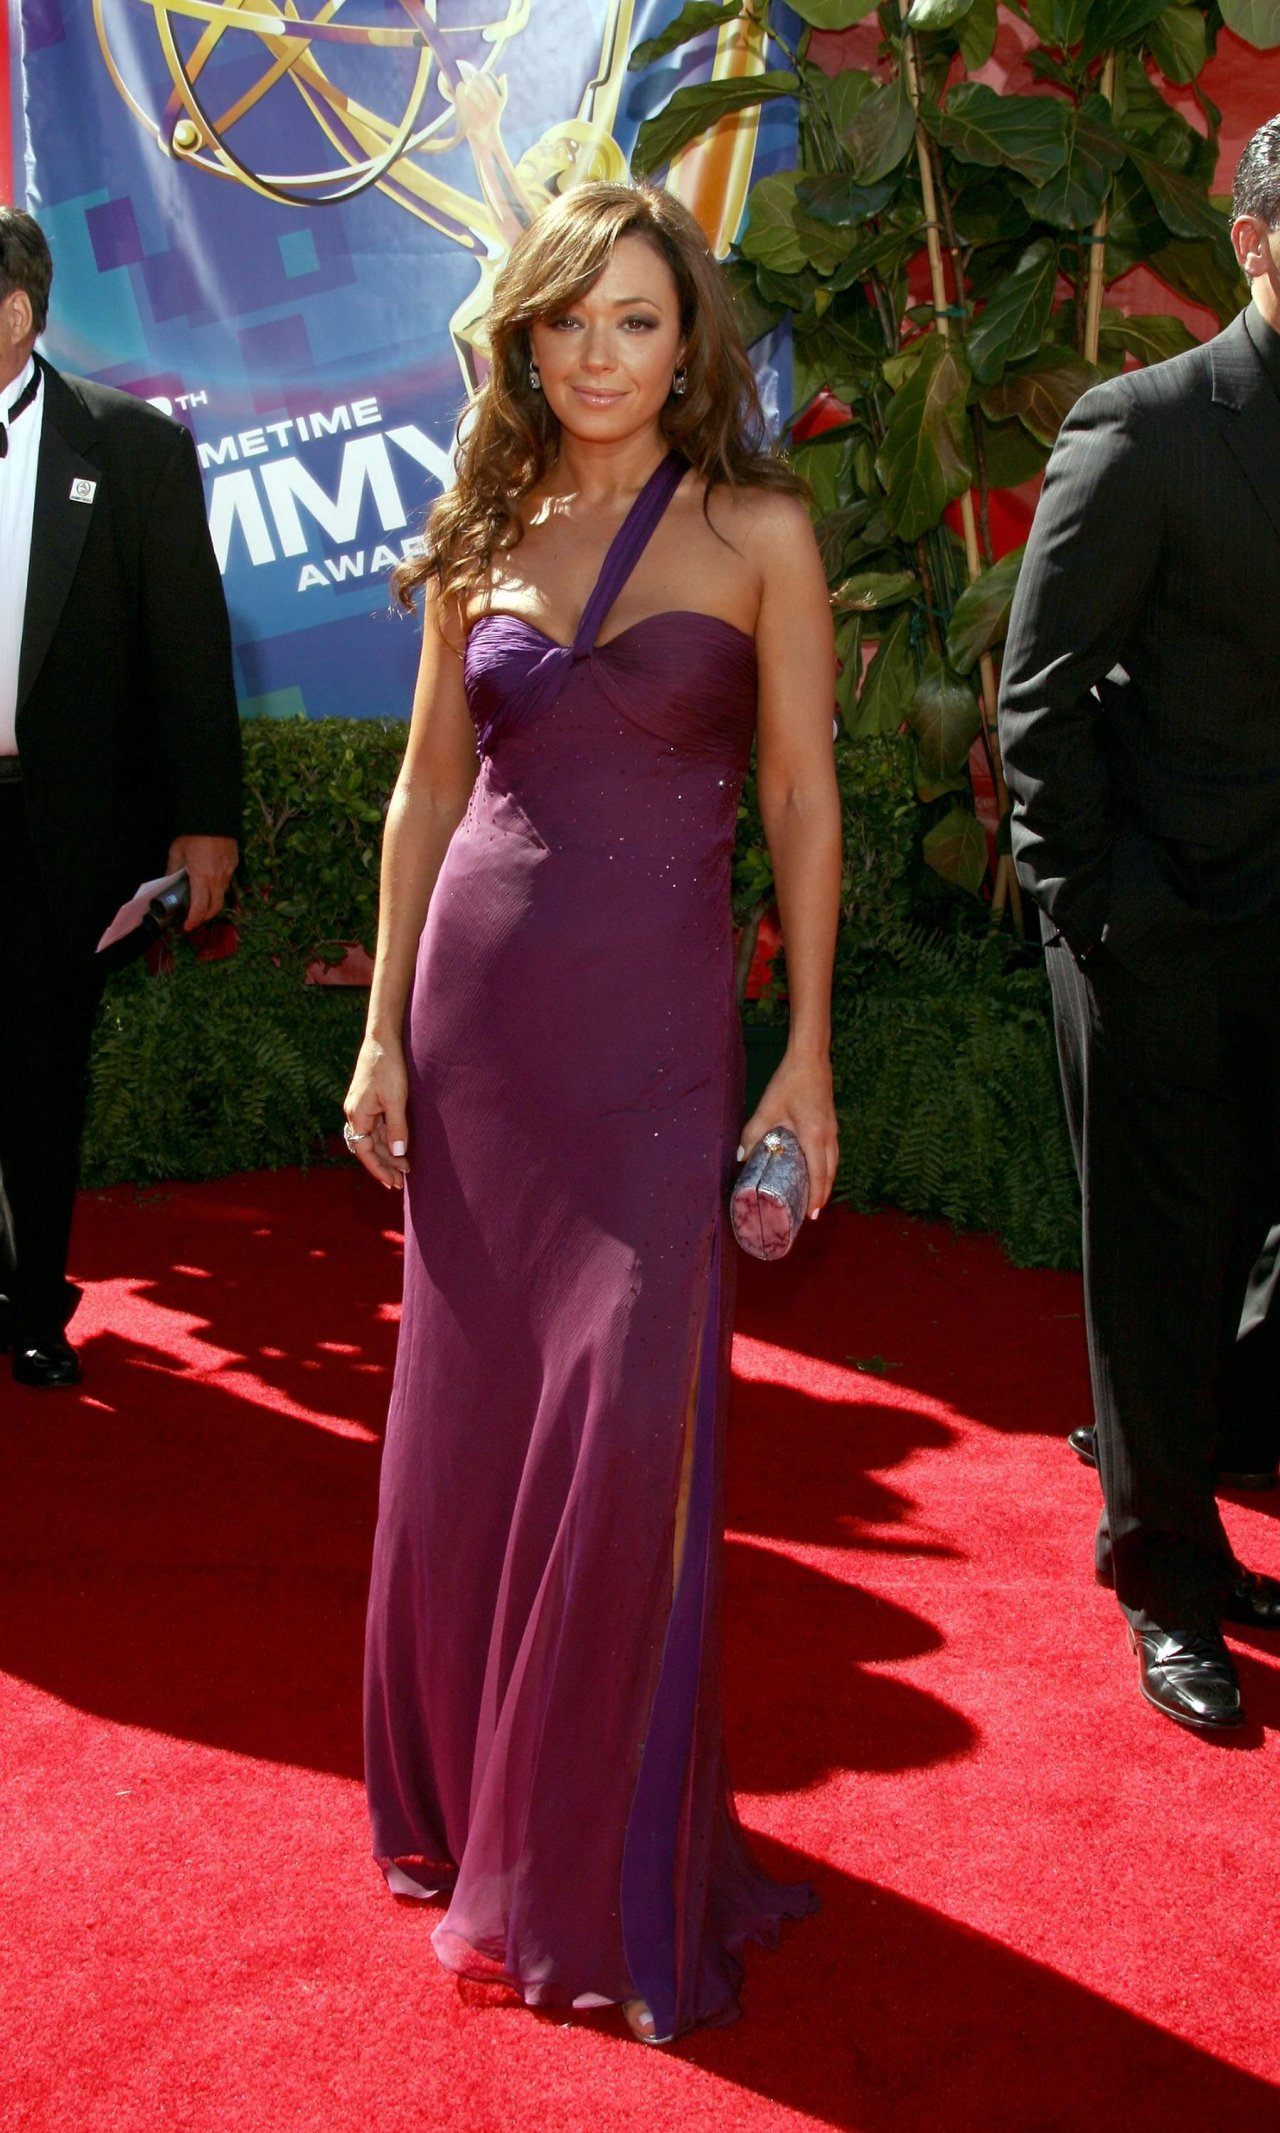 Leah Remini photo #251294 | Celebs-Place.com